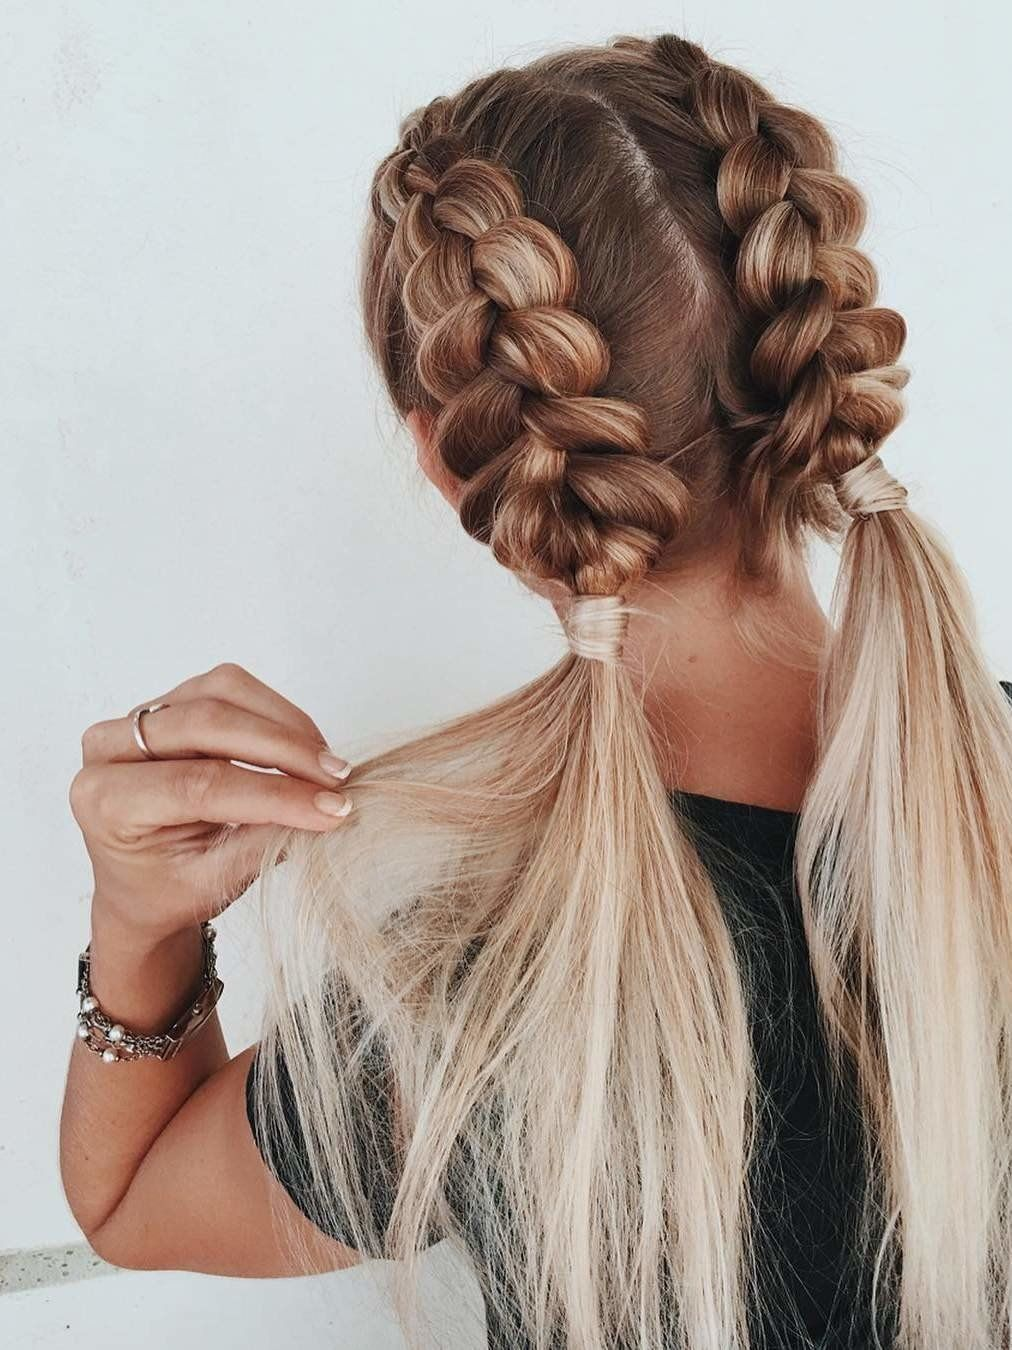 7 Braided Hairstyles That People Are Loving On Pinterest Braided Hairstyles Easy Braided Hairstyles Tutorials Easy Hair Styles